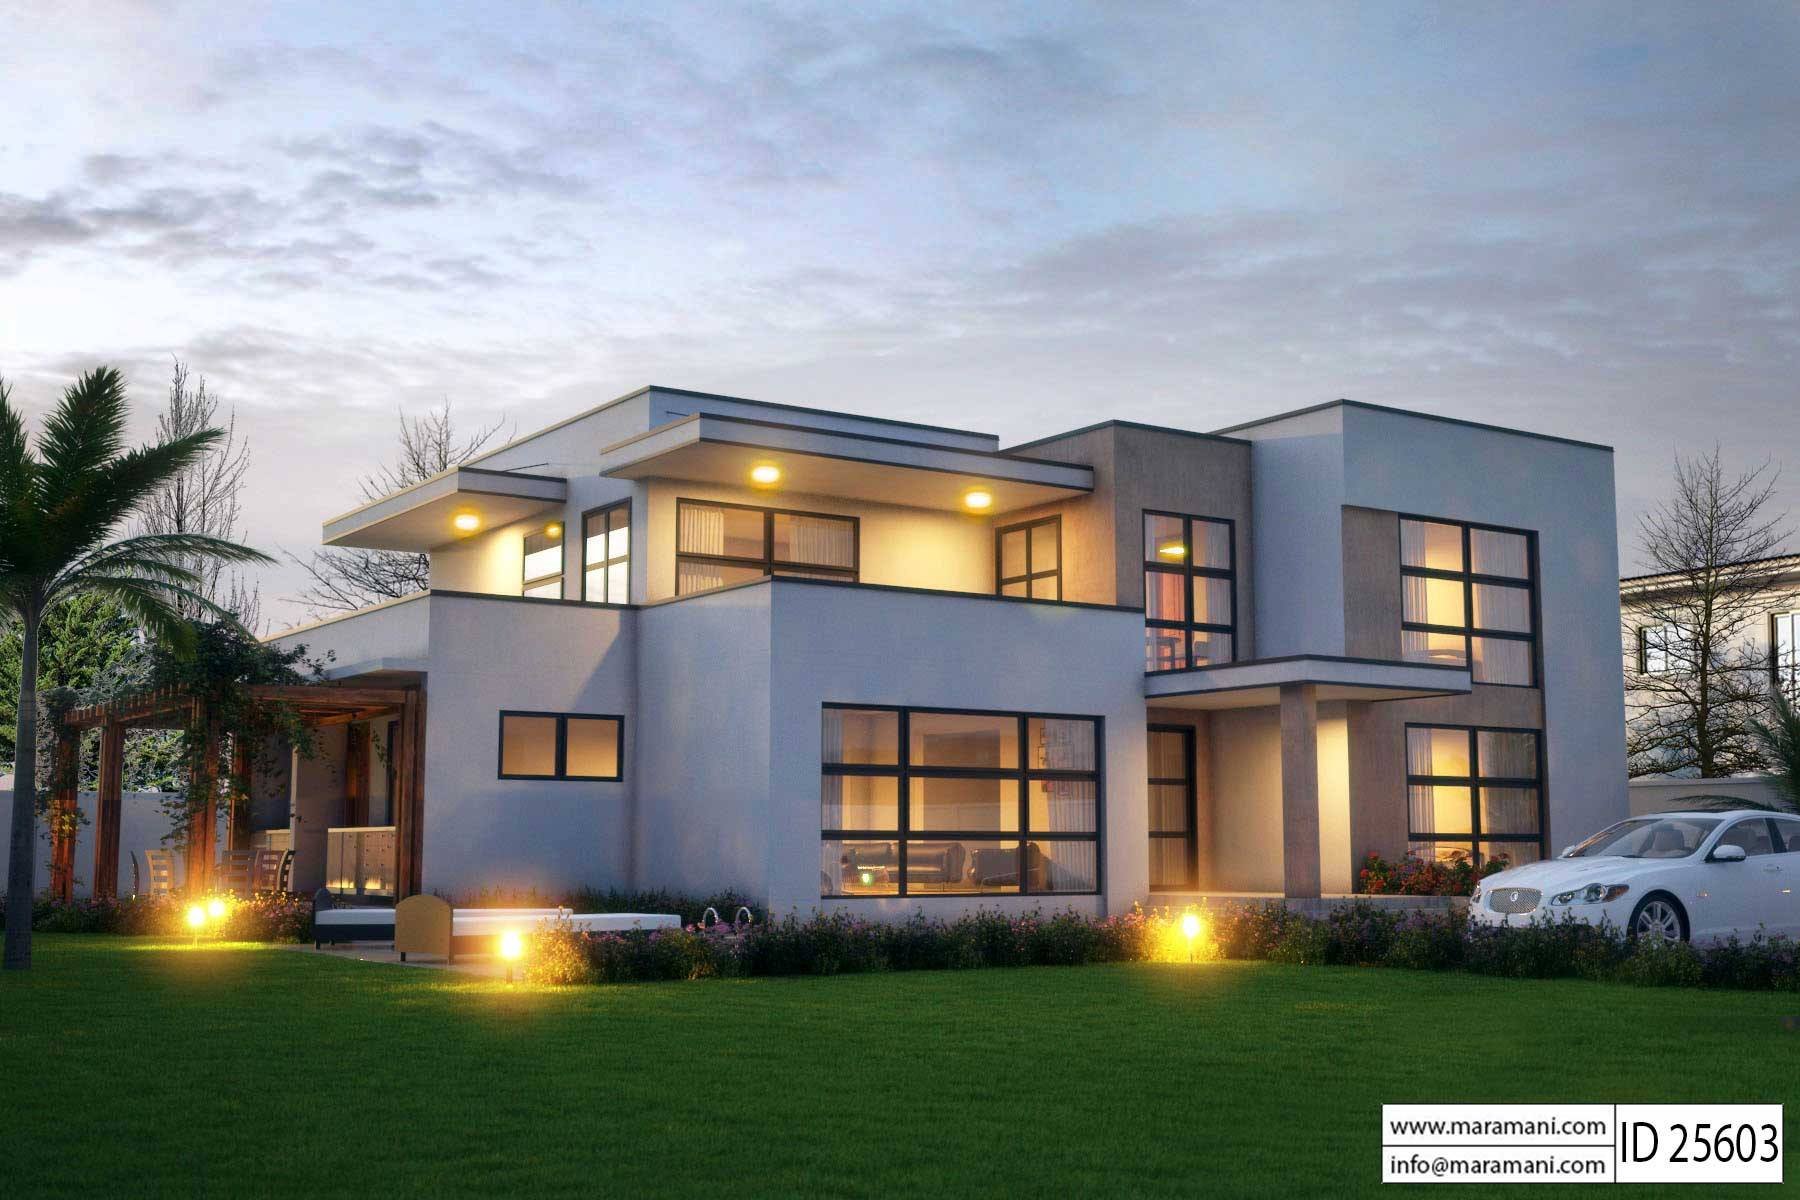 Modern 5 bedroom house design id 25603 floor plans by for 5 br house plans